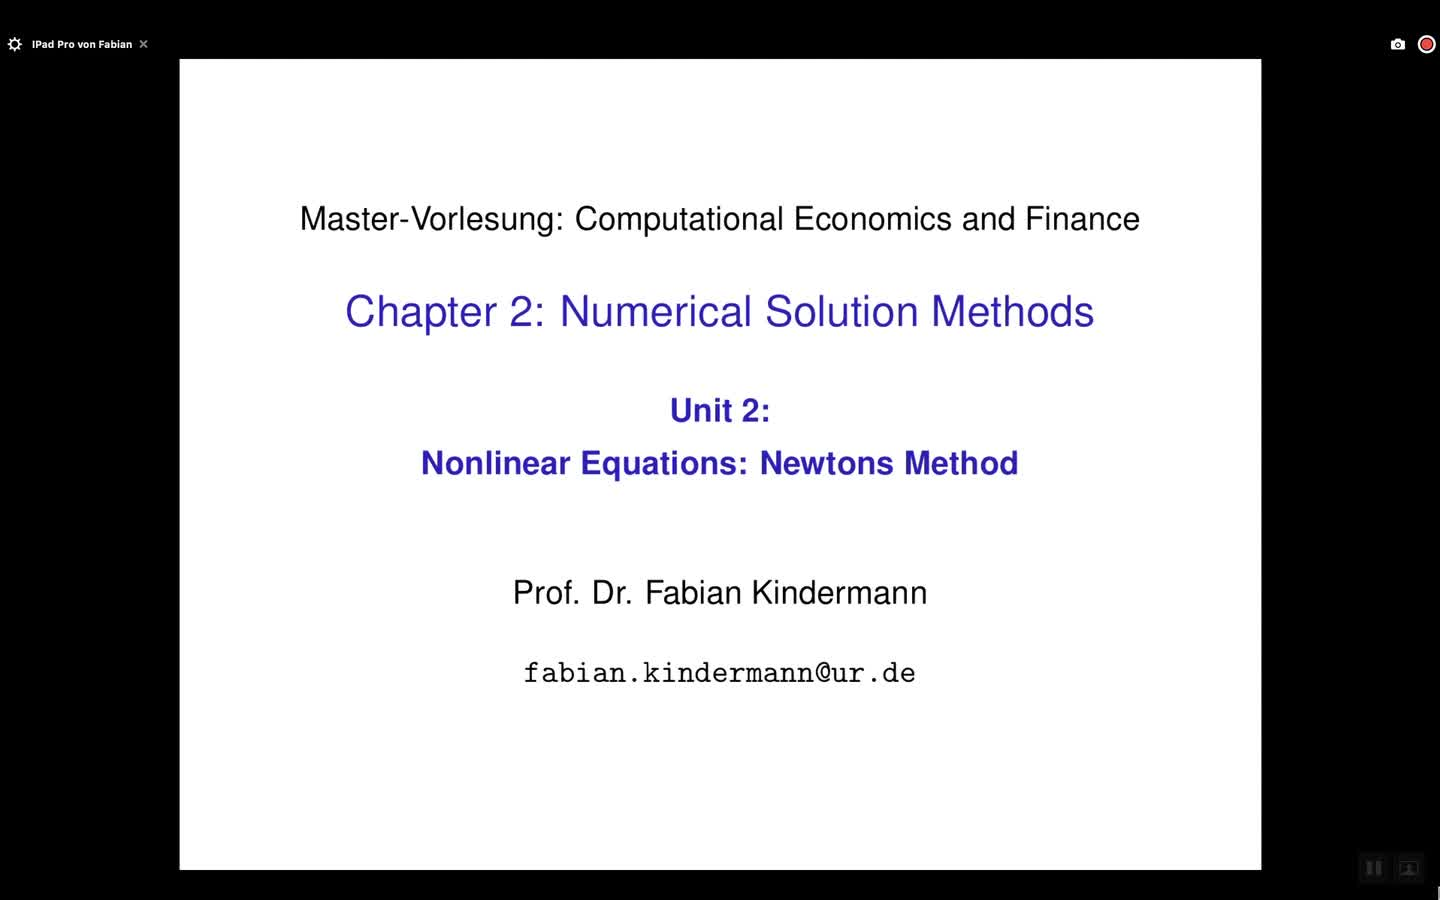 Chapter 2 - Unit 2 - Nonlinear Equations: Newtons Method